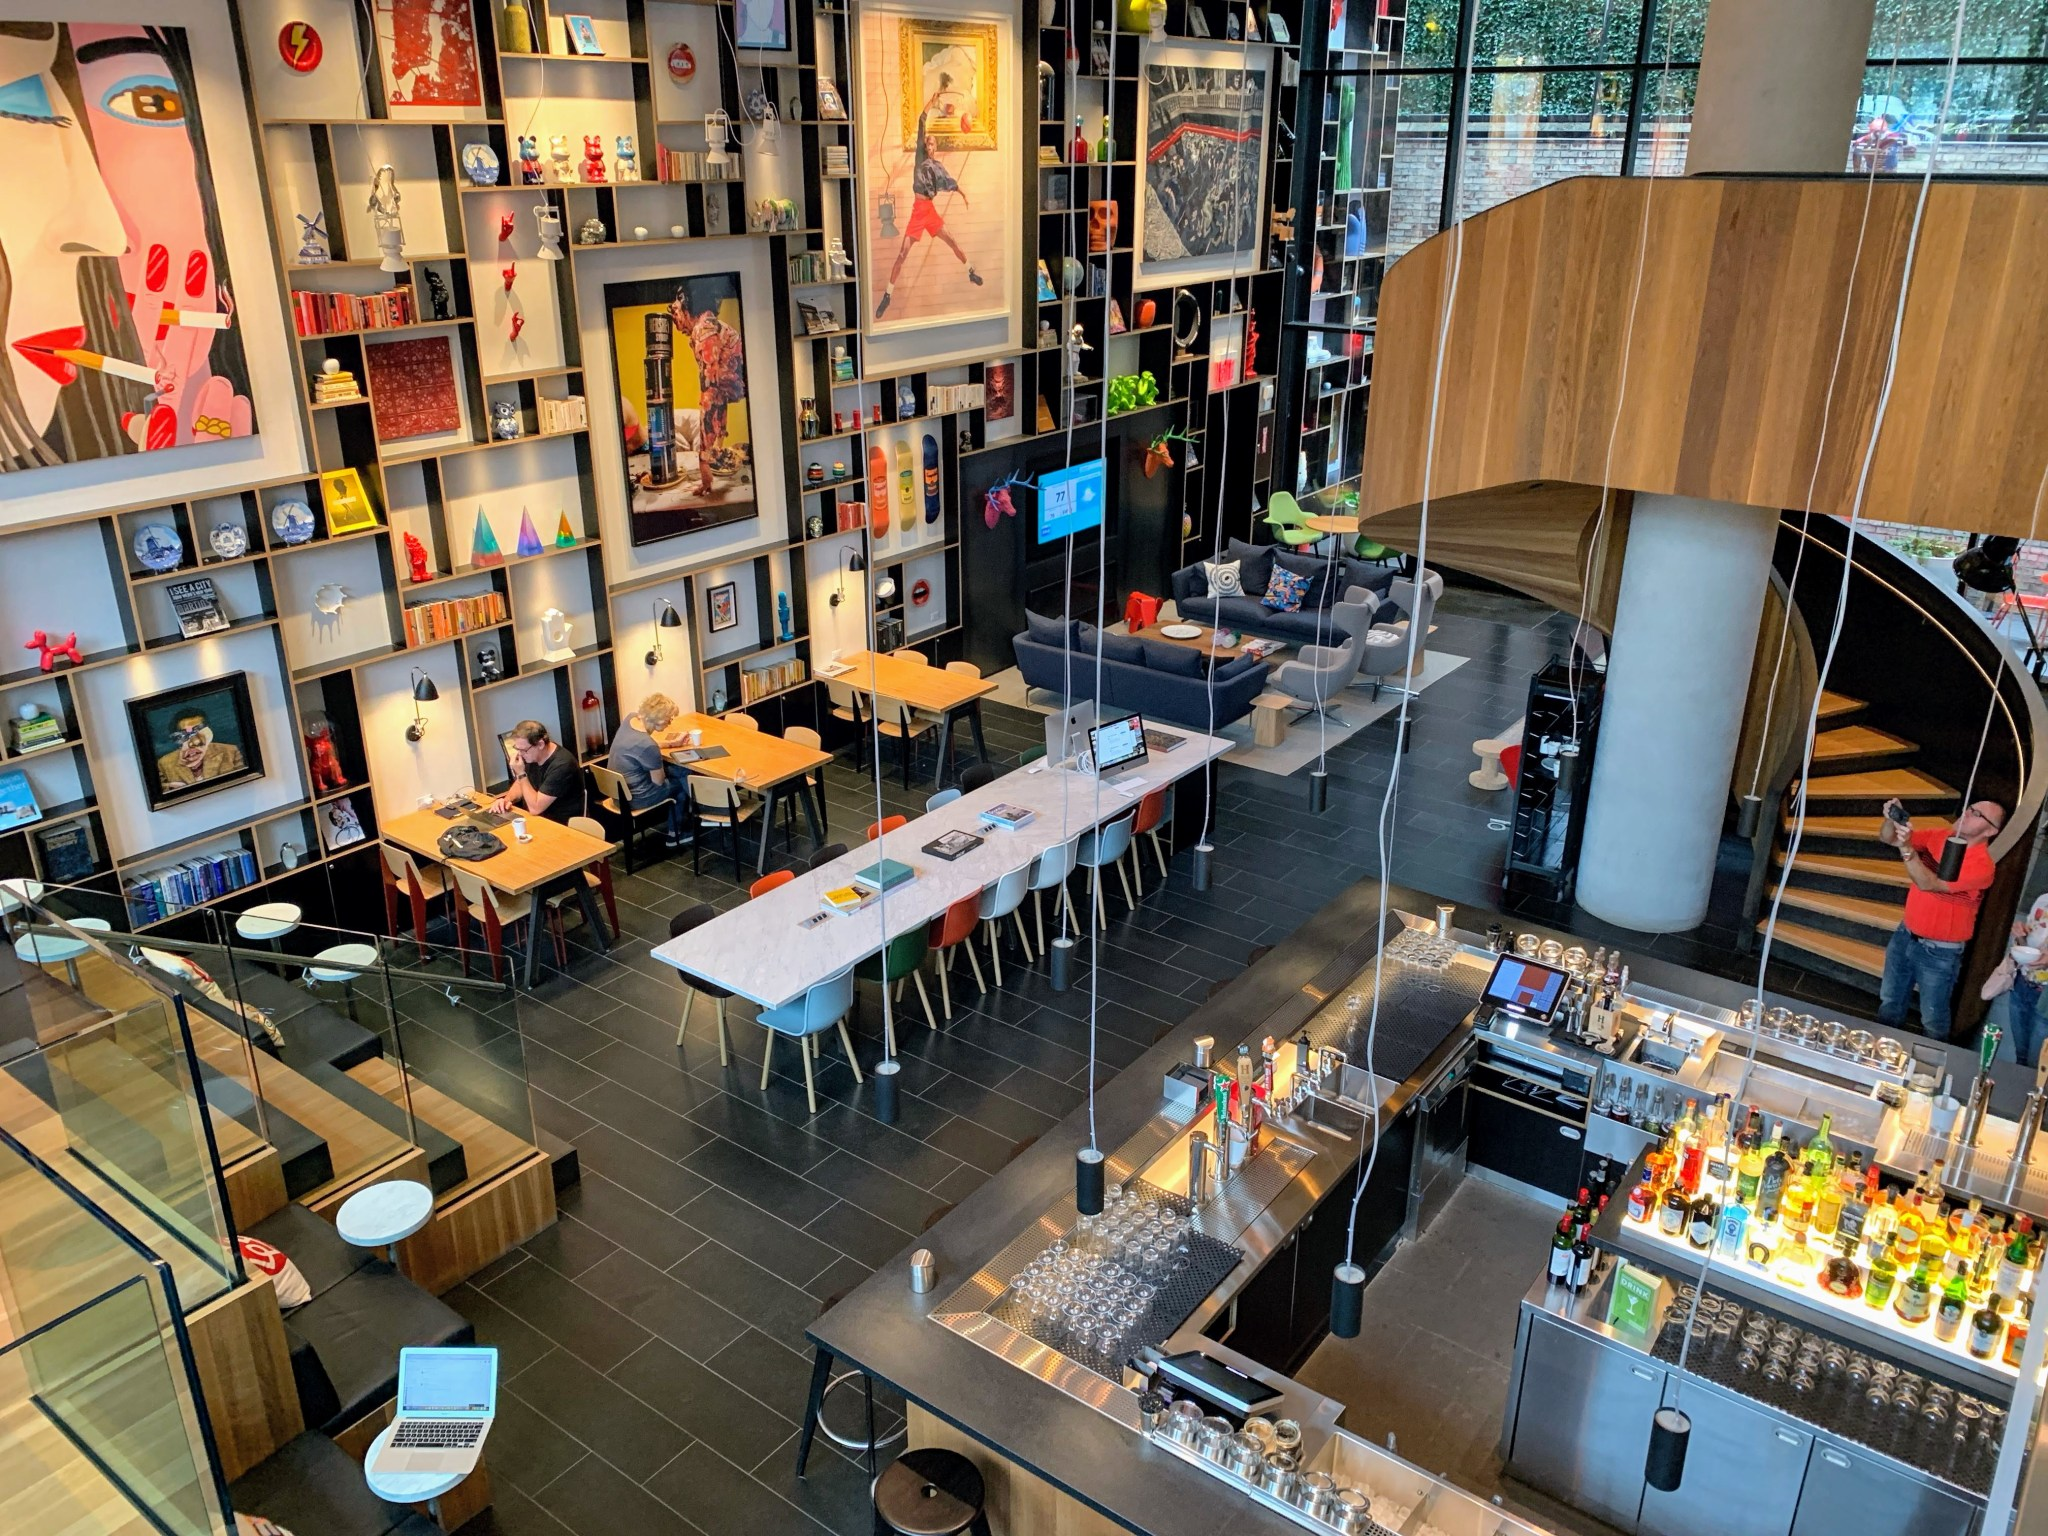 CitizenM-Bowery-New-York-Modular-Hotel-Living-Room-and-Bar-Area